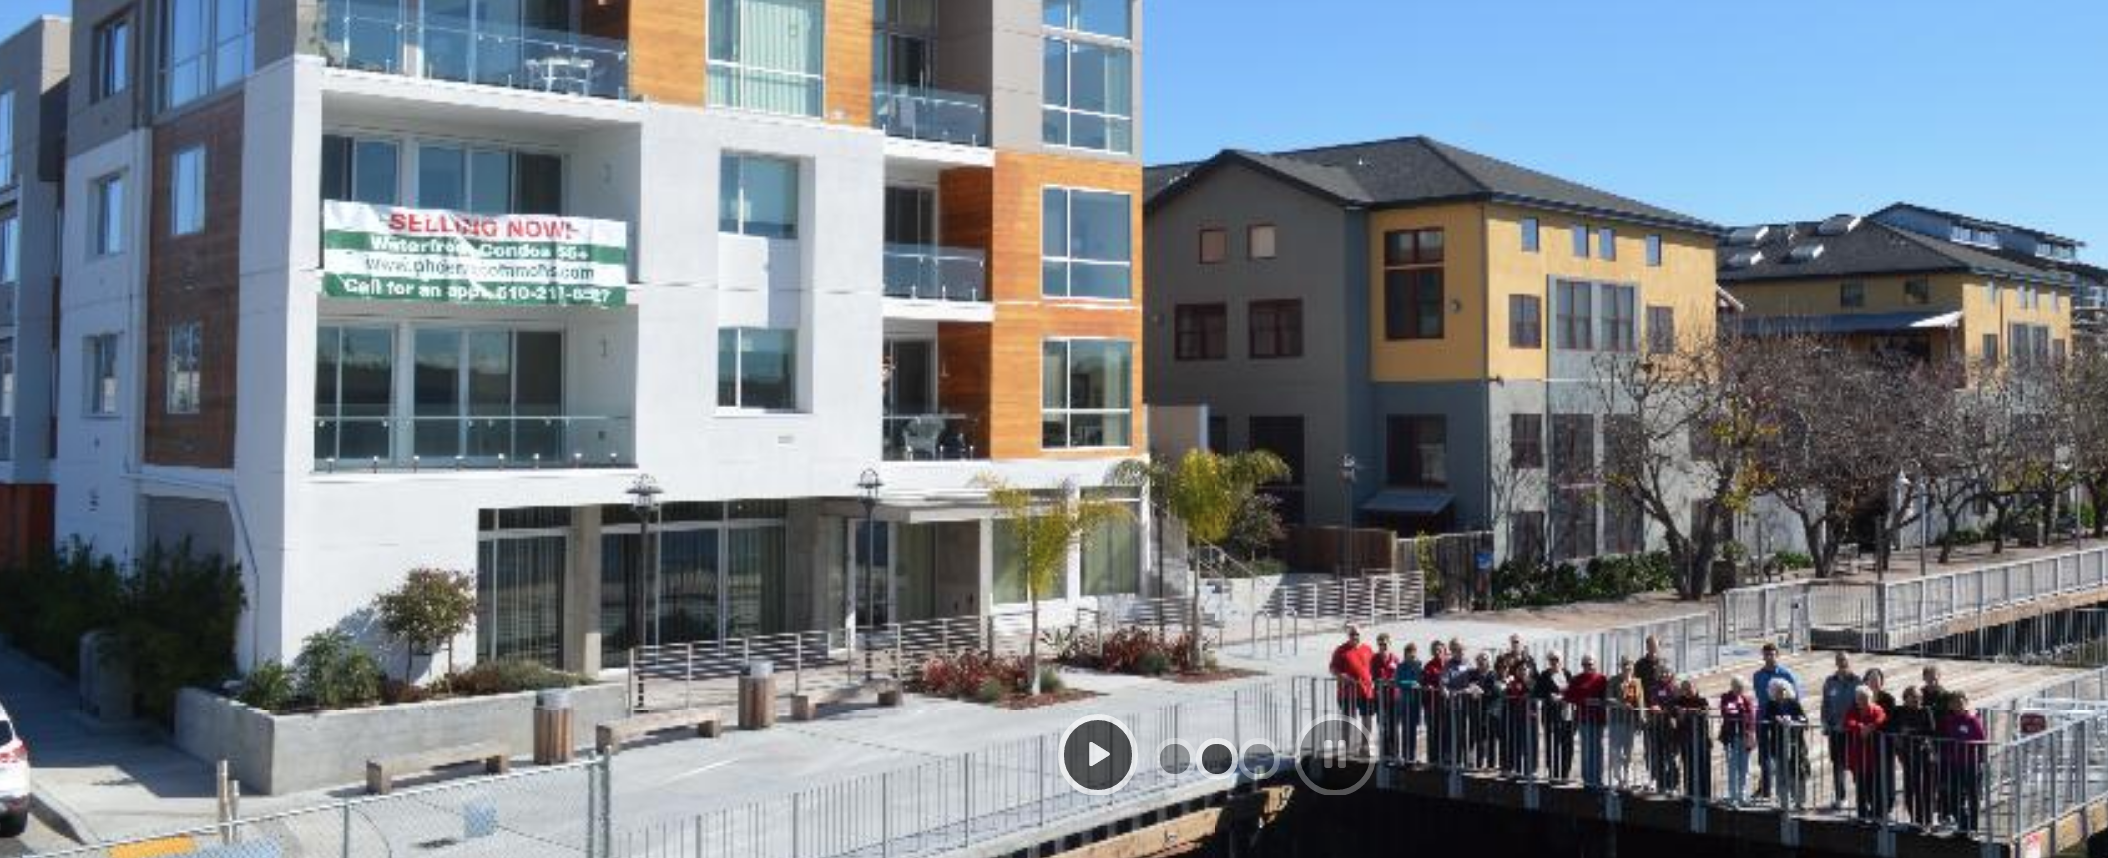 Phoenix Commons Cohousing